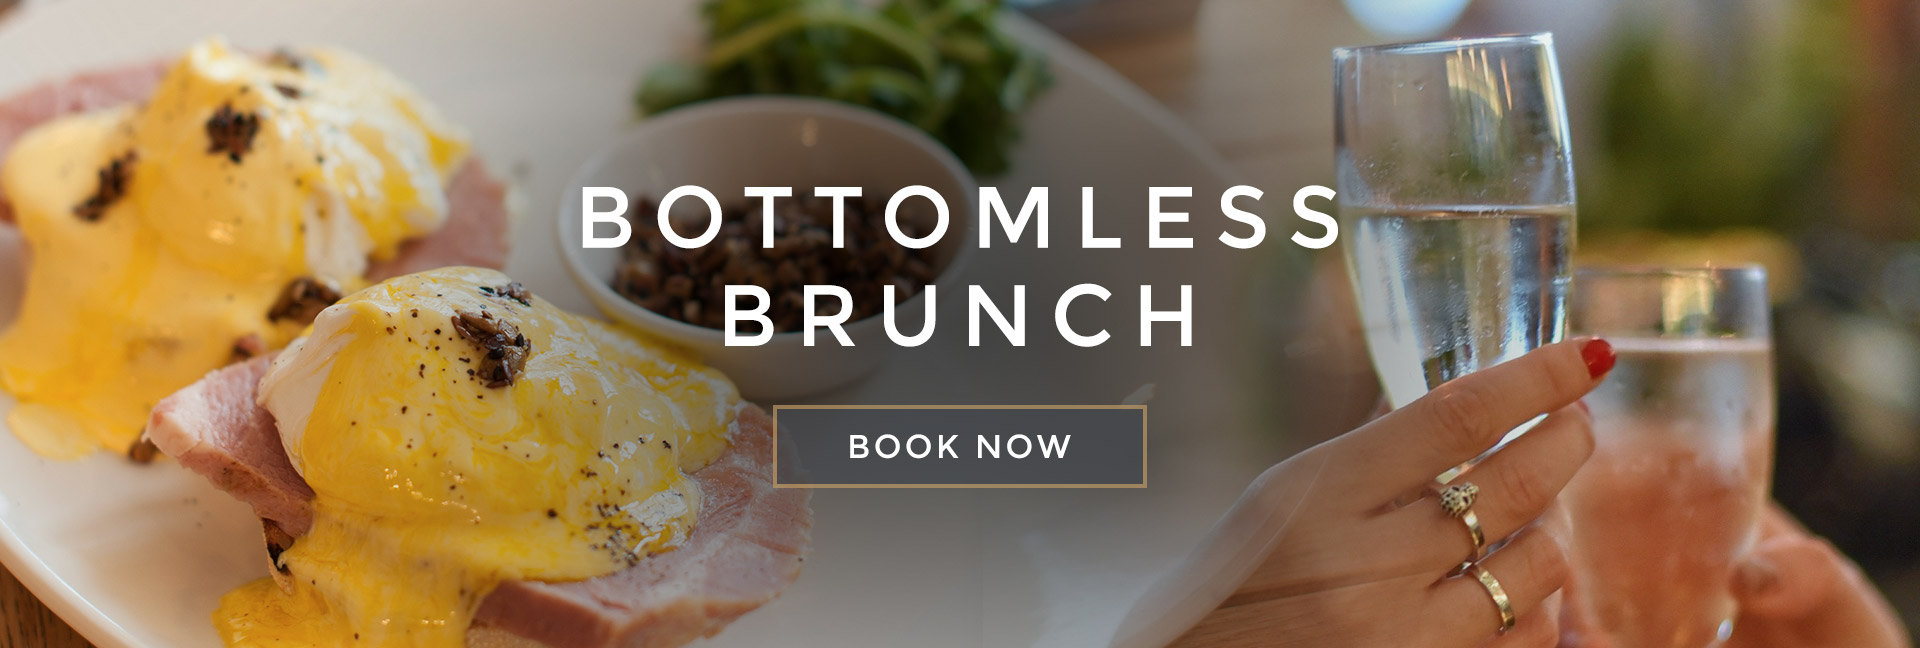 Bottomless Brunch at All Bar One Bath - Book now